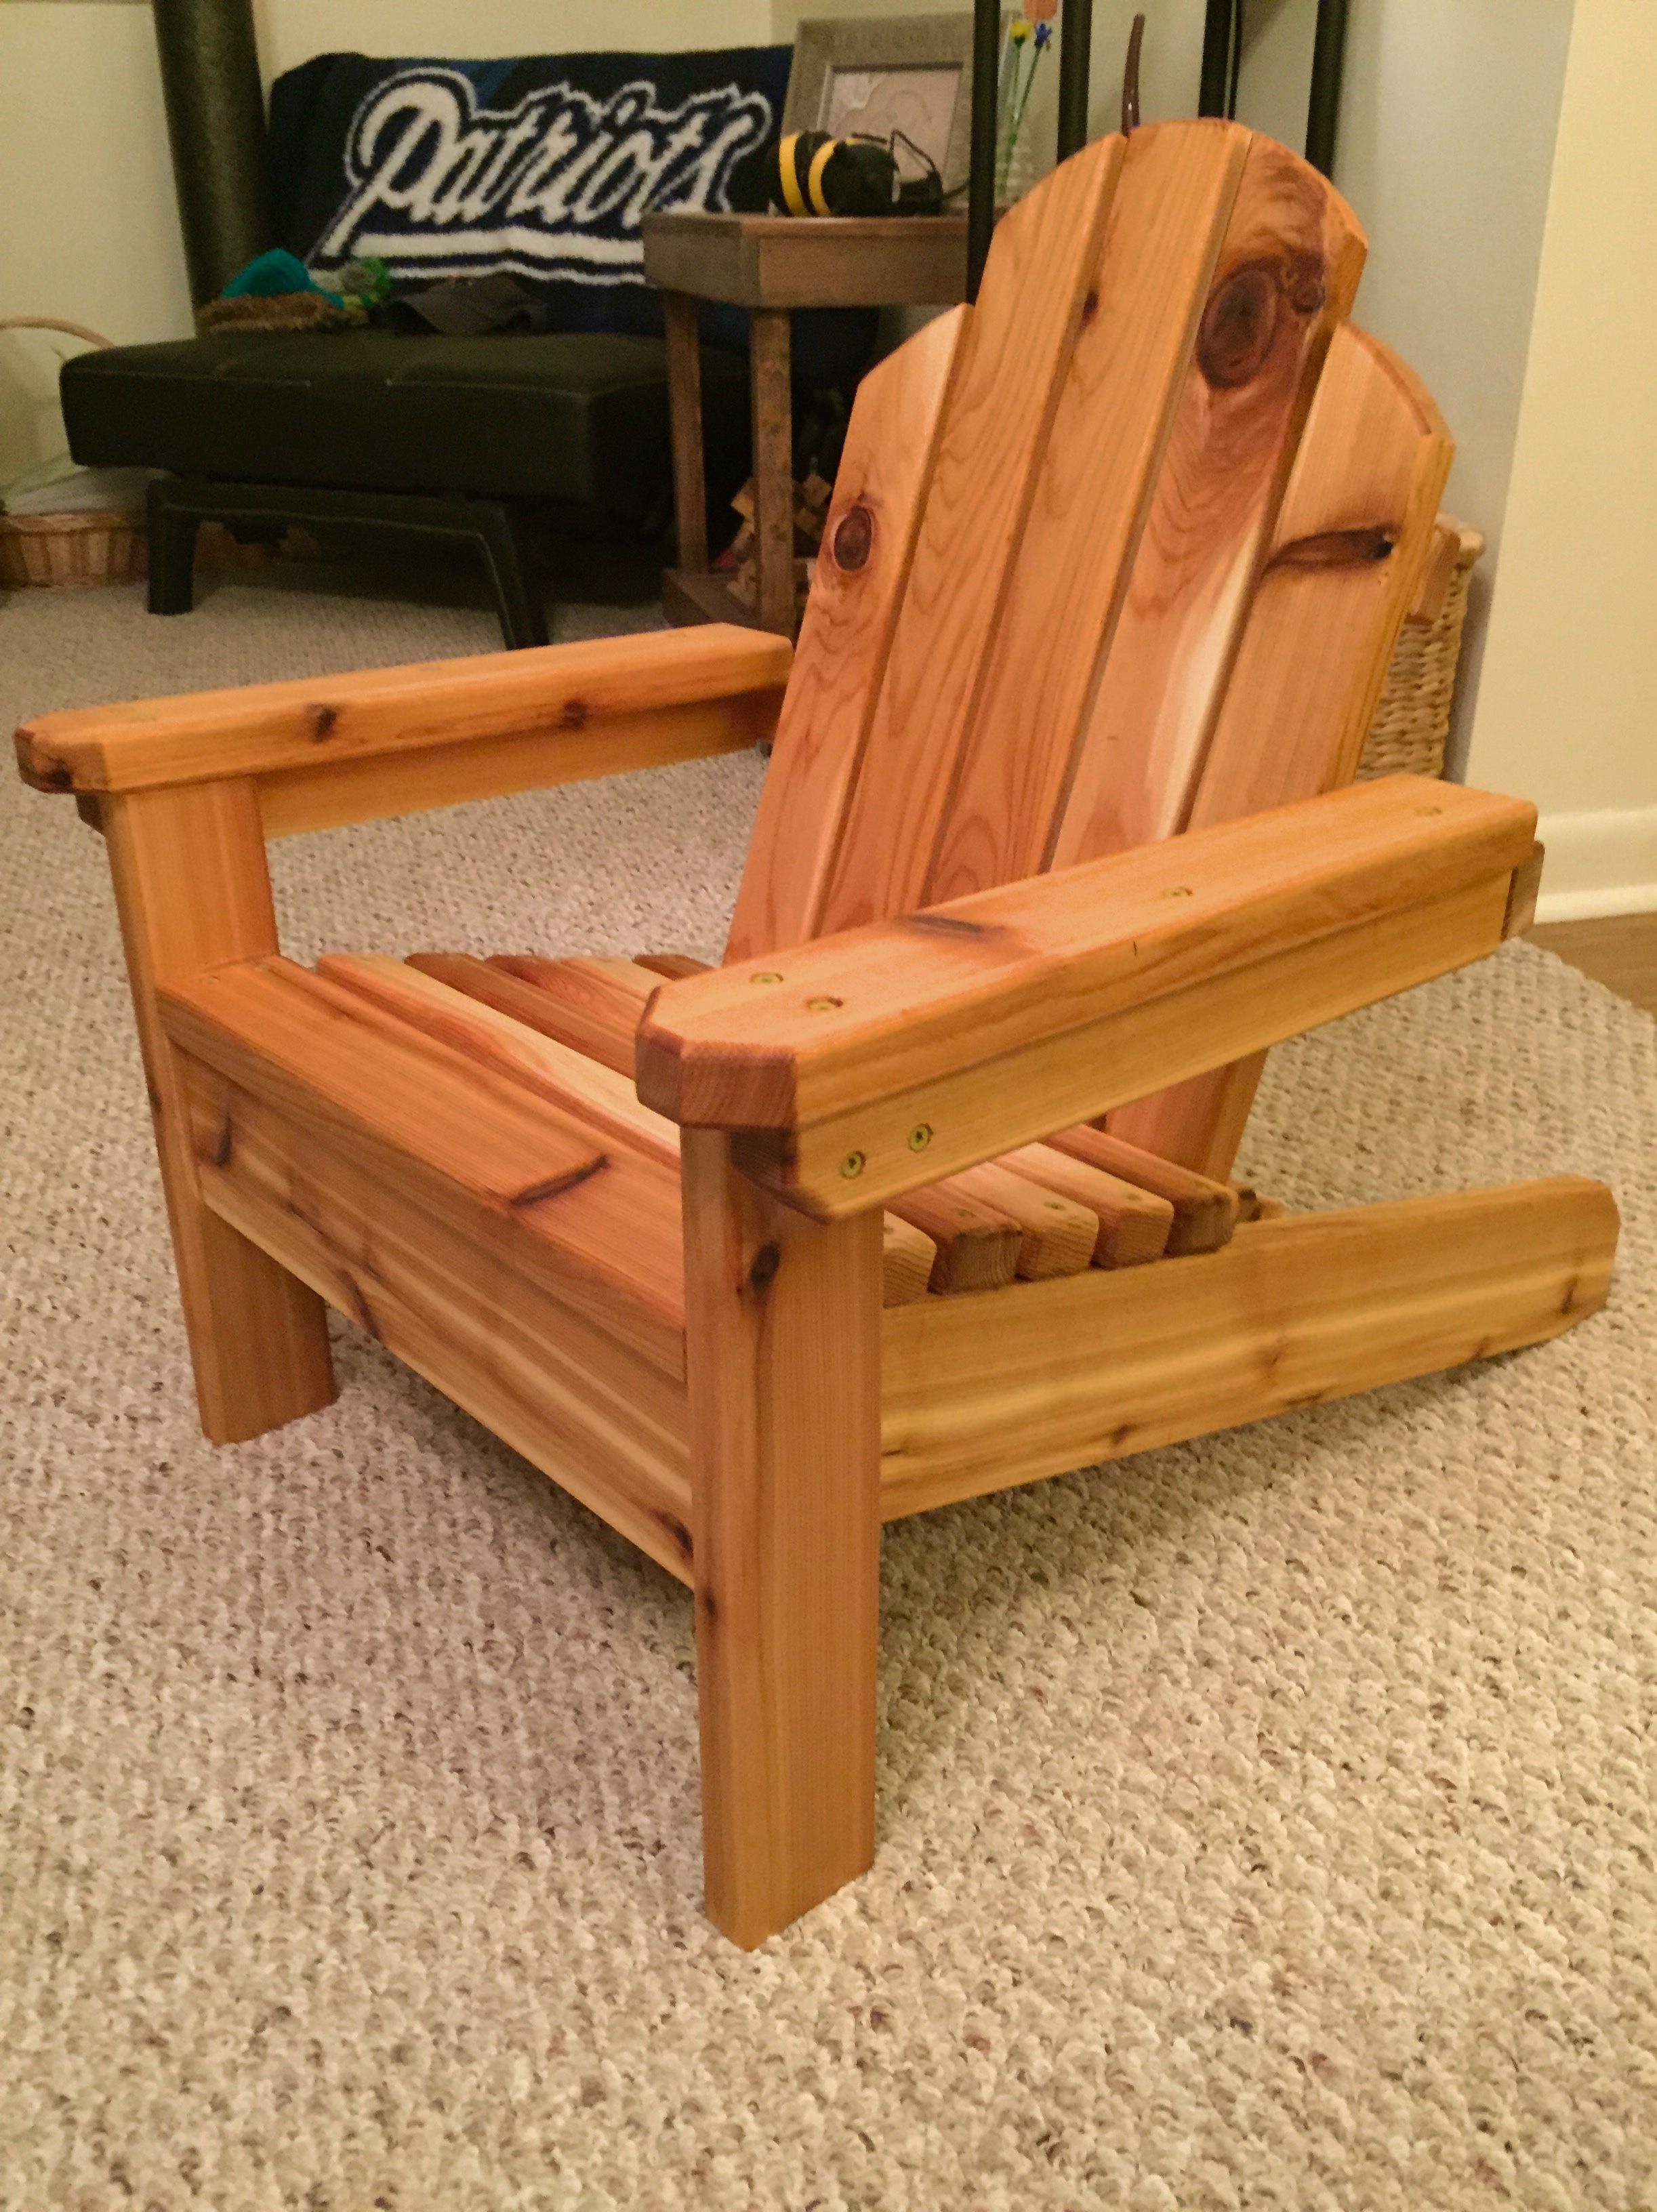 Mini Adirondack Chair | Do It Yourself Home Projects from Ana White